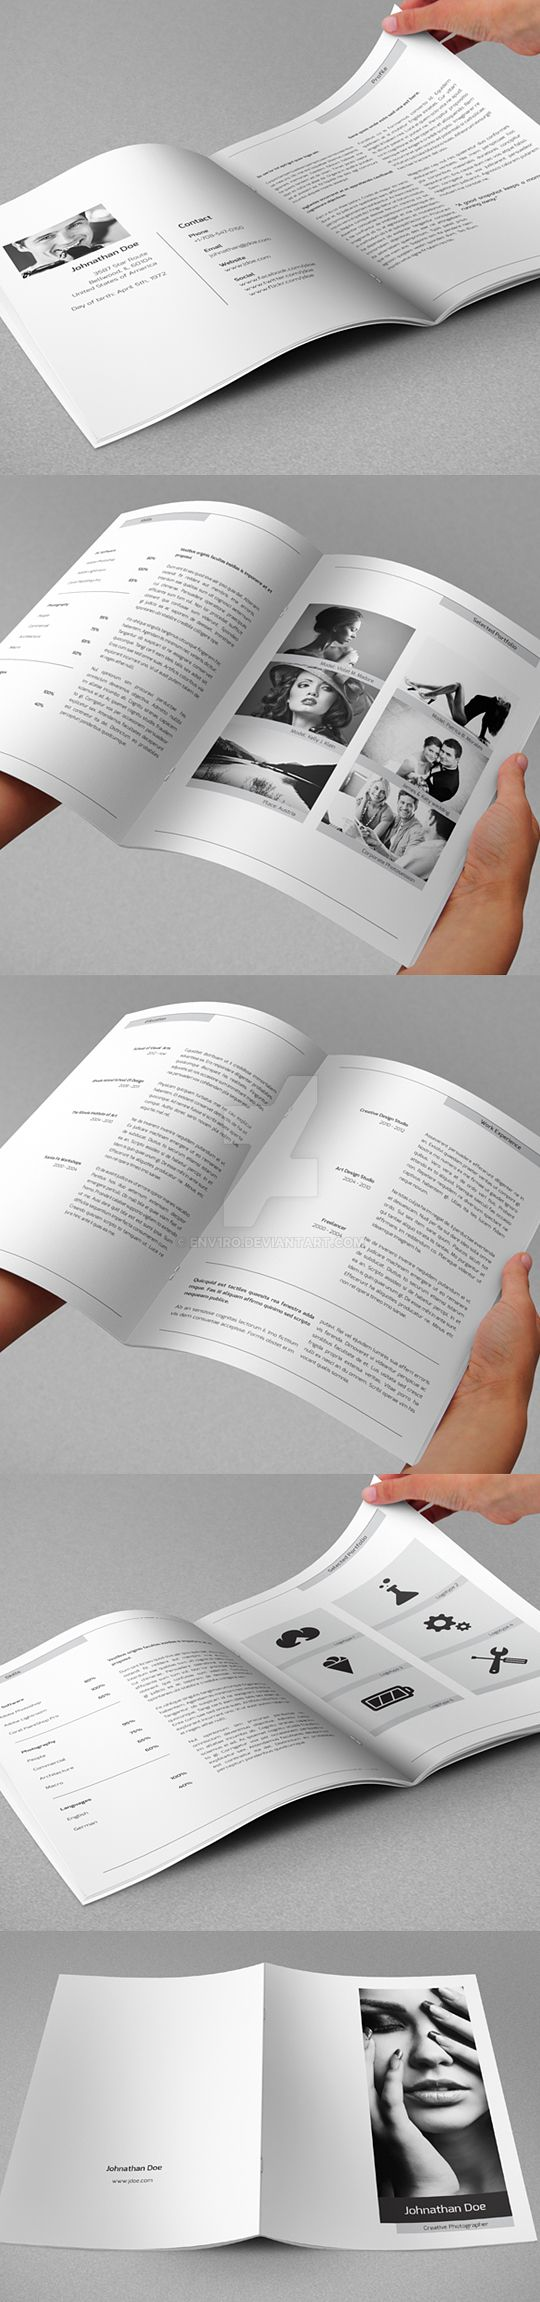 Minimal Resume Booklet and Cover Letter by env1ro on DeviantArt